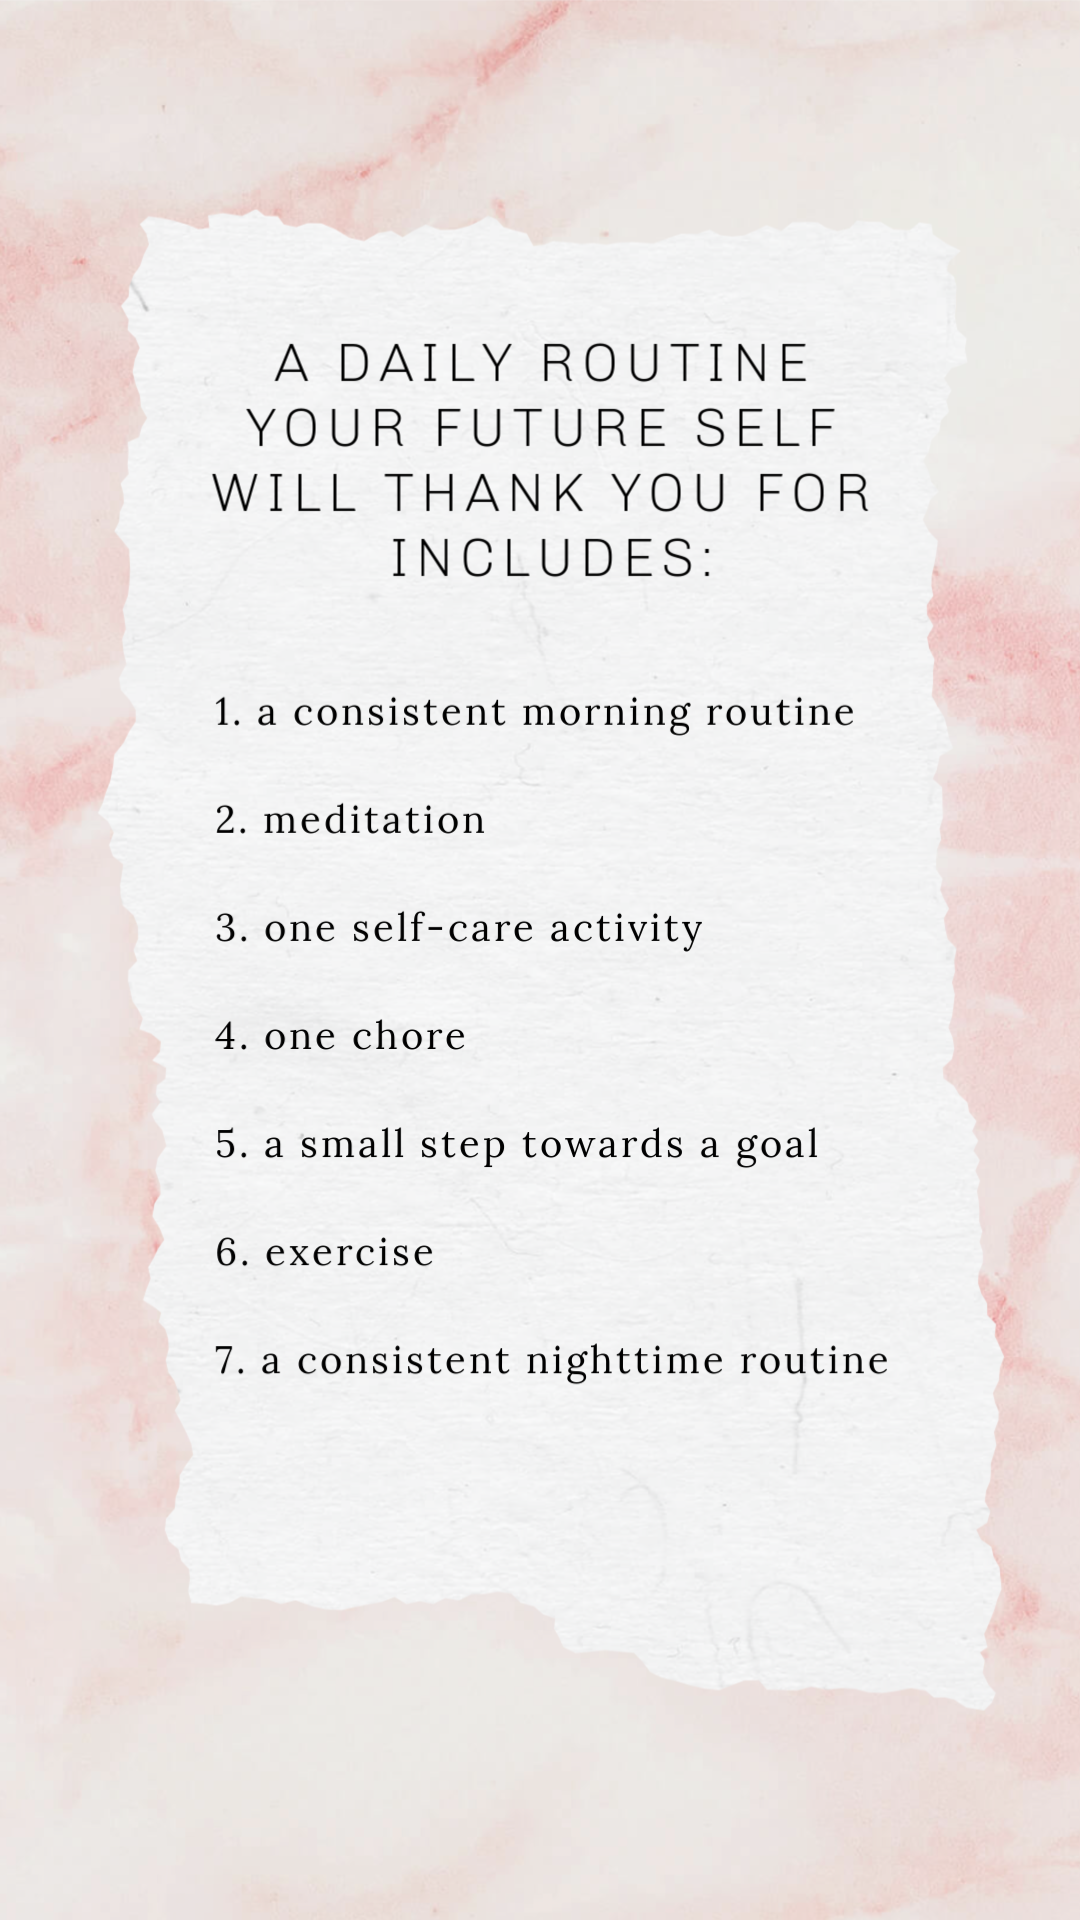 A DAILY ROUTINE YOUR FUTURE SELF WILL THANK YOU FO